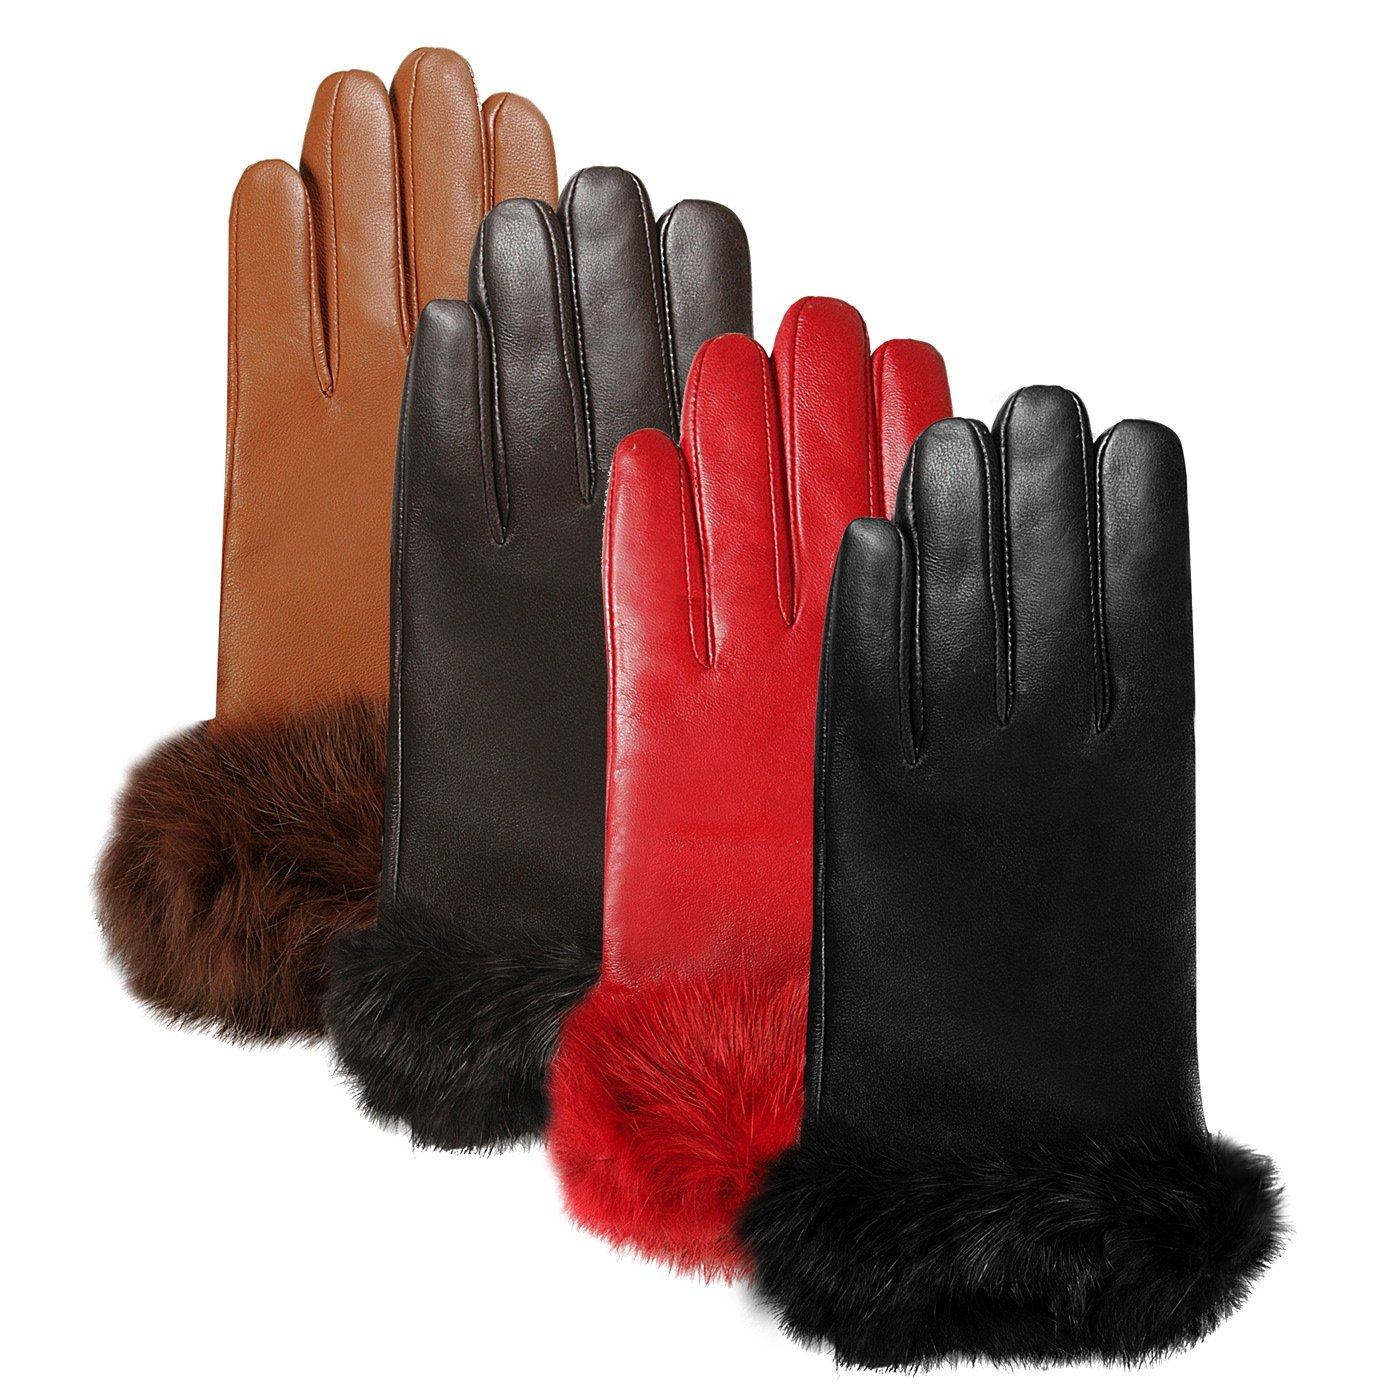 Luxury Lane Women's Rabbit Fur Cuff Cashmere Lined Lambskin Leather Gloves - Chocolate Medium by Luxury Lane (Image #1)